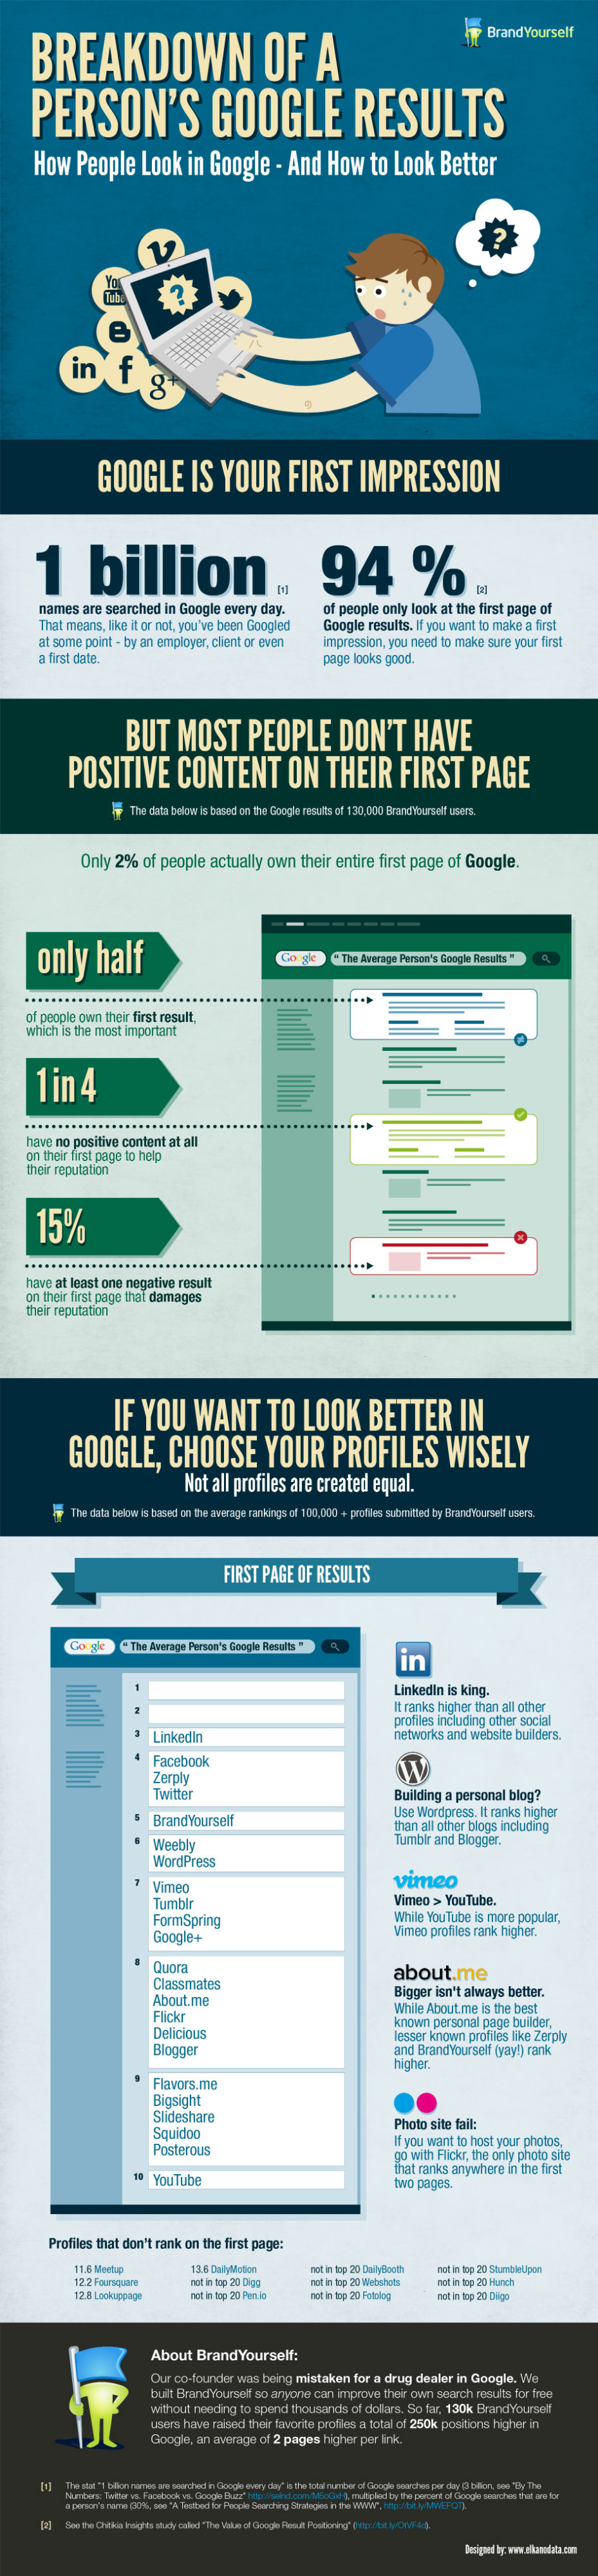 How to Look Better in Personal Google Results [Infographic]